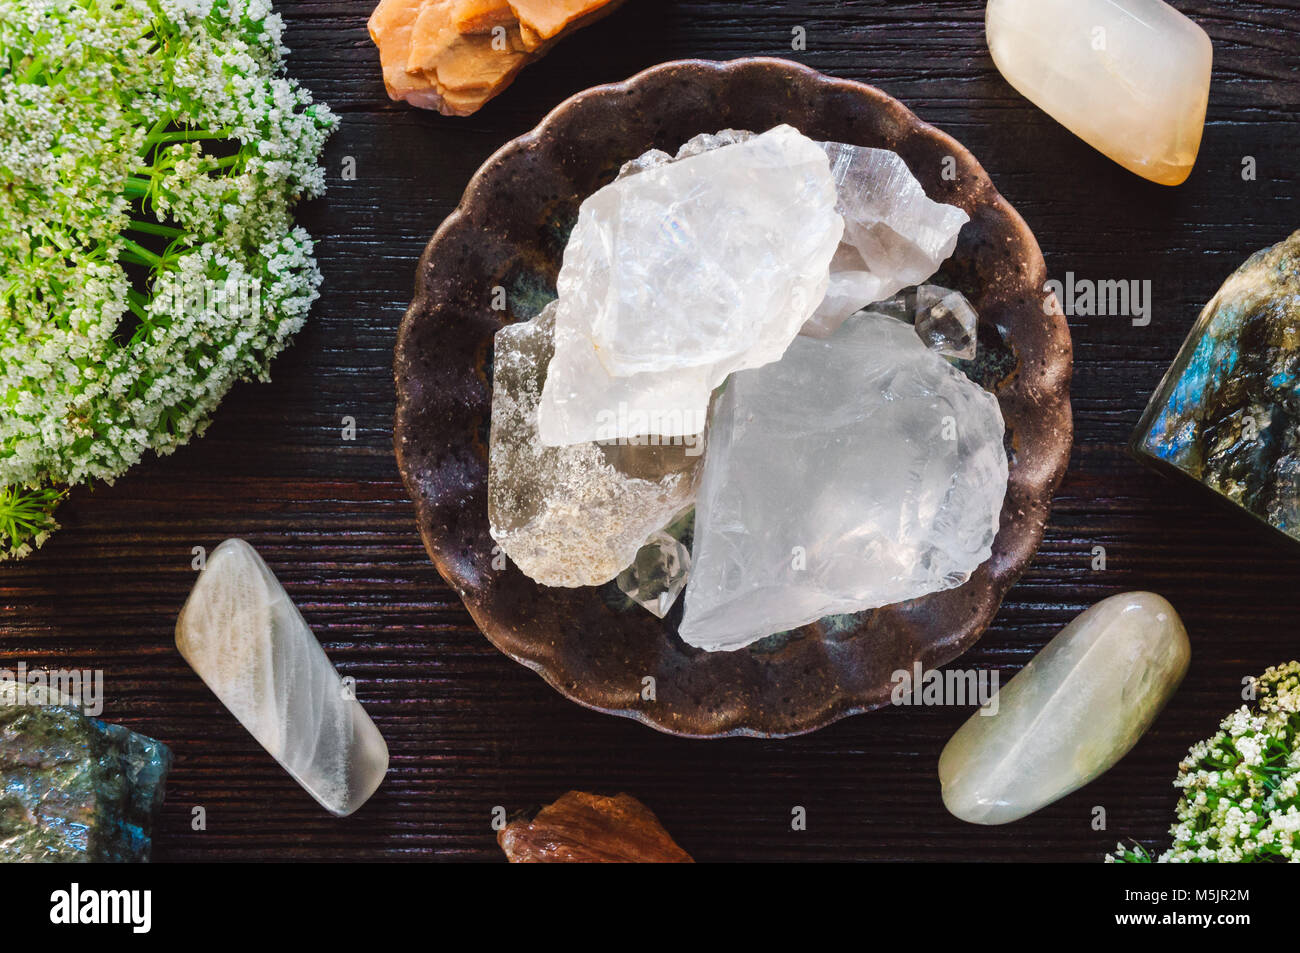 Lunar Stones, including Moonstone, Girasol and Labradorite on Dark Table - Stock Image